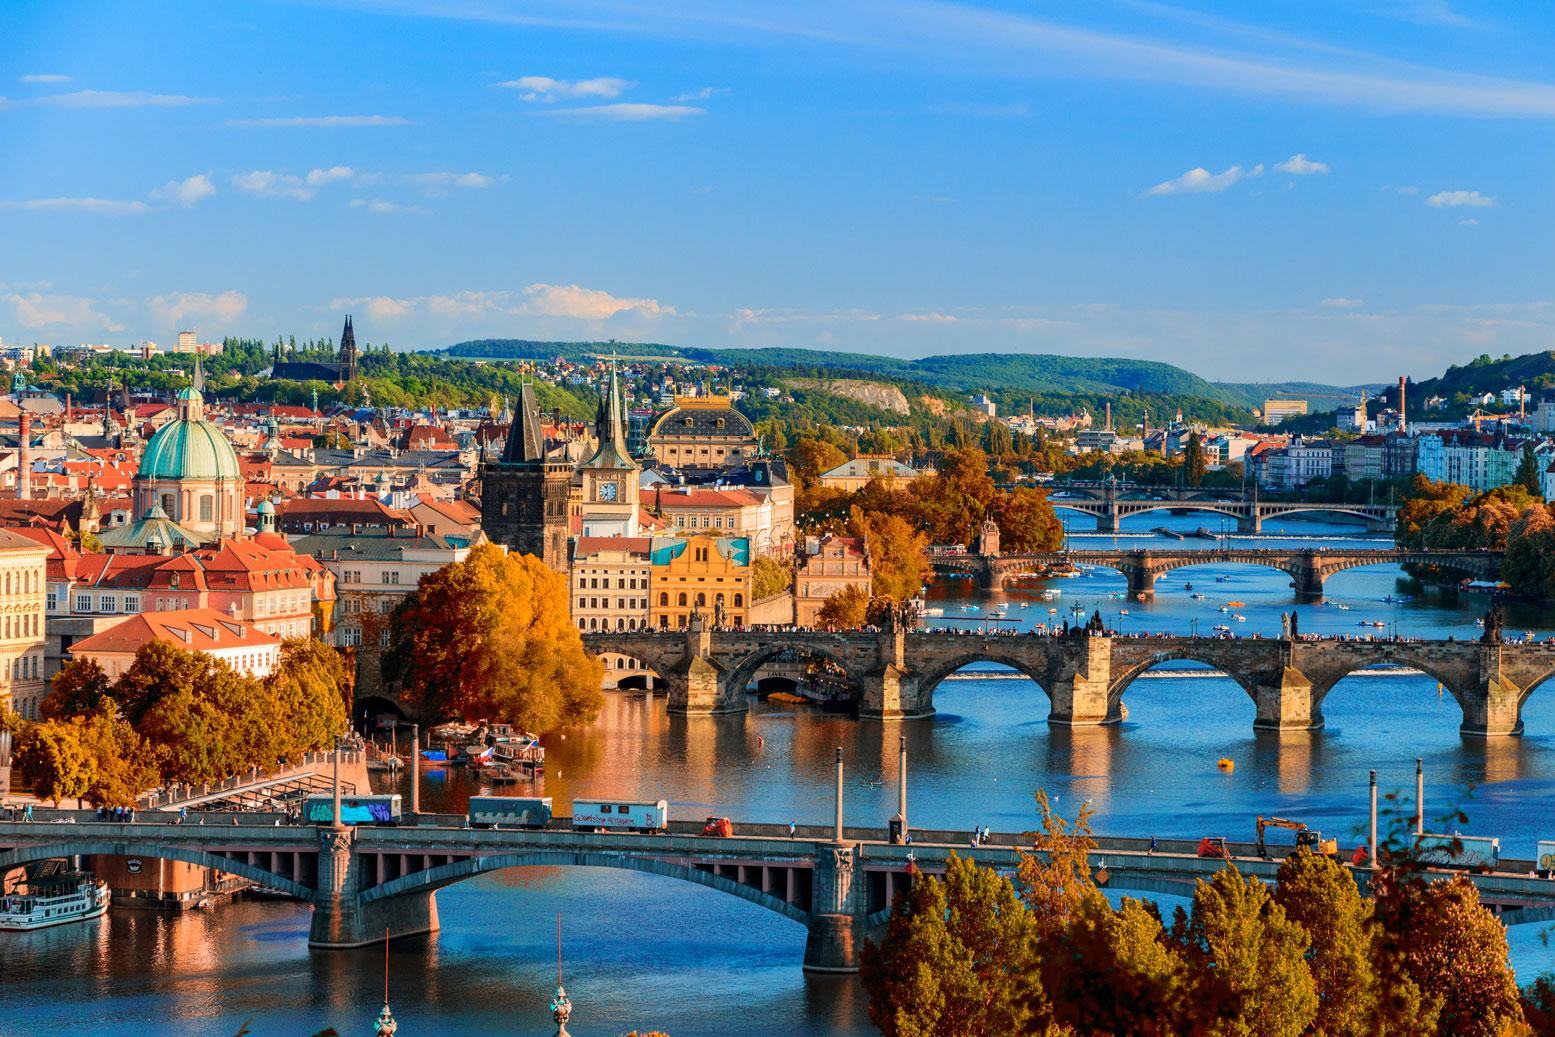 View of the Vlatava River in Prague with a Czech Republic vacation package